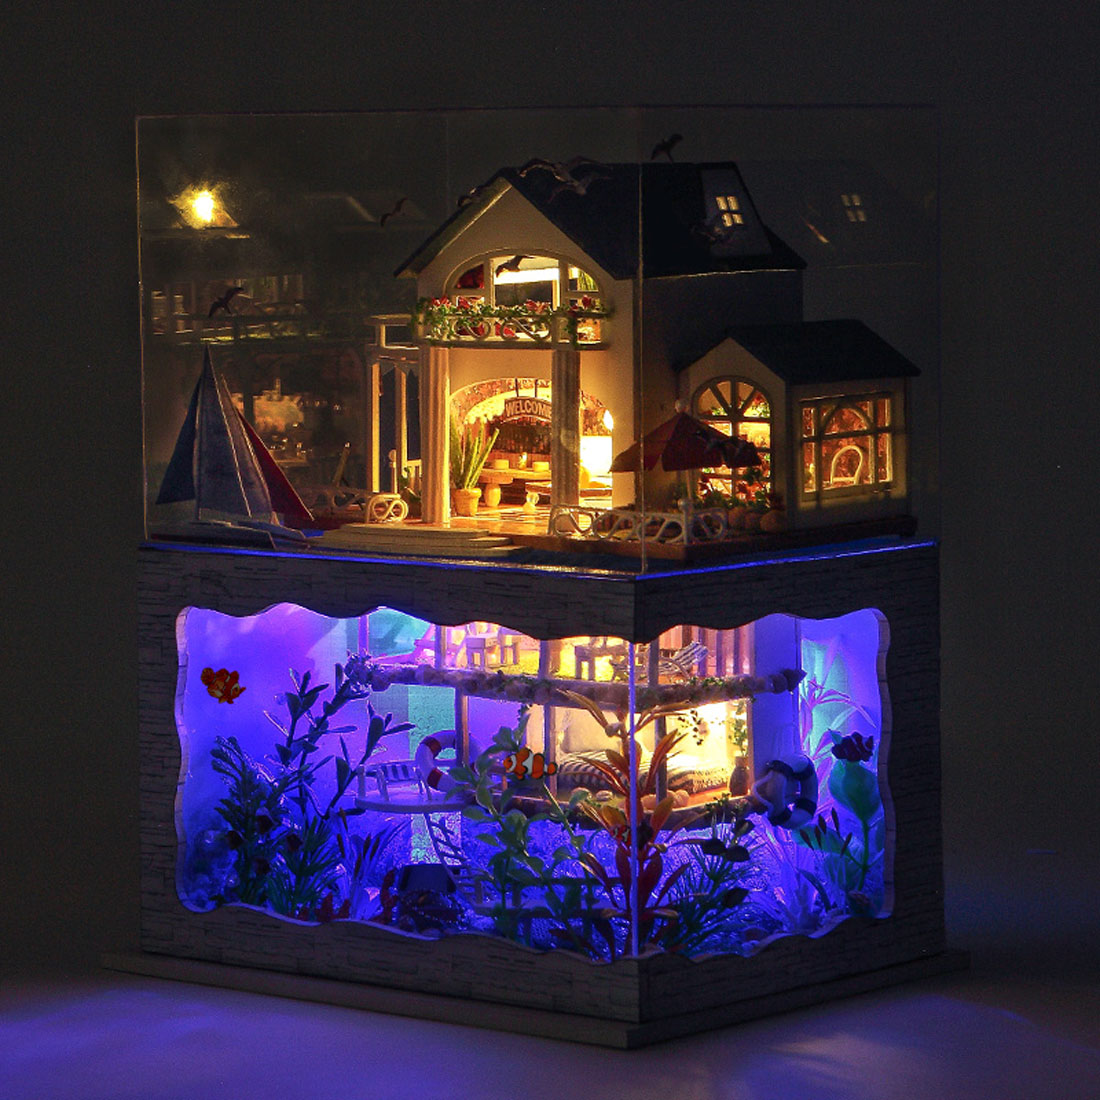 DIY Creative Handmade Theme Wooden Cabin Assembly Building Model Toy Set With Light And Dust Cover - Impression Hawaii